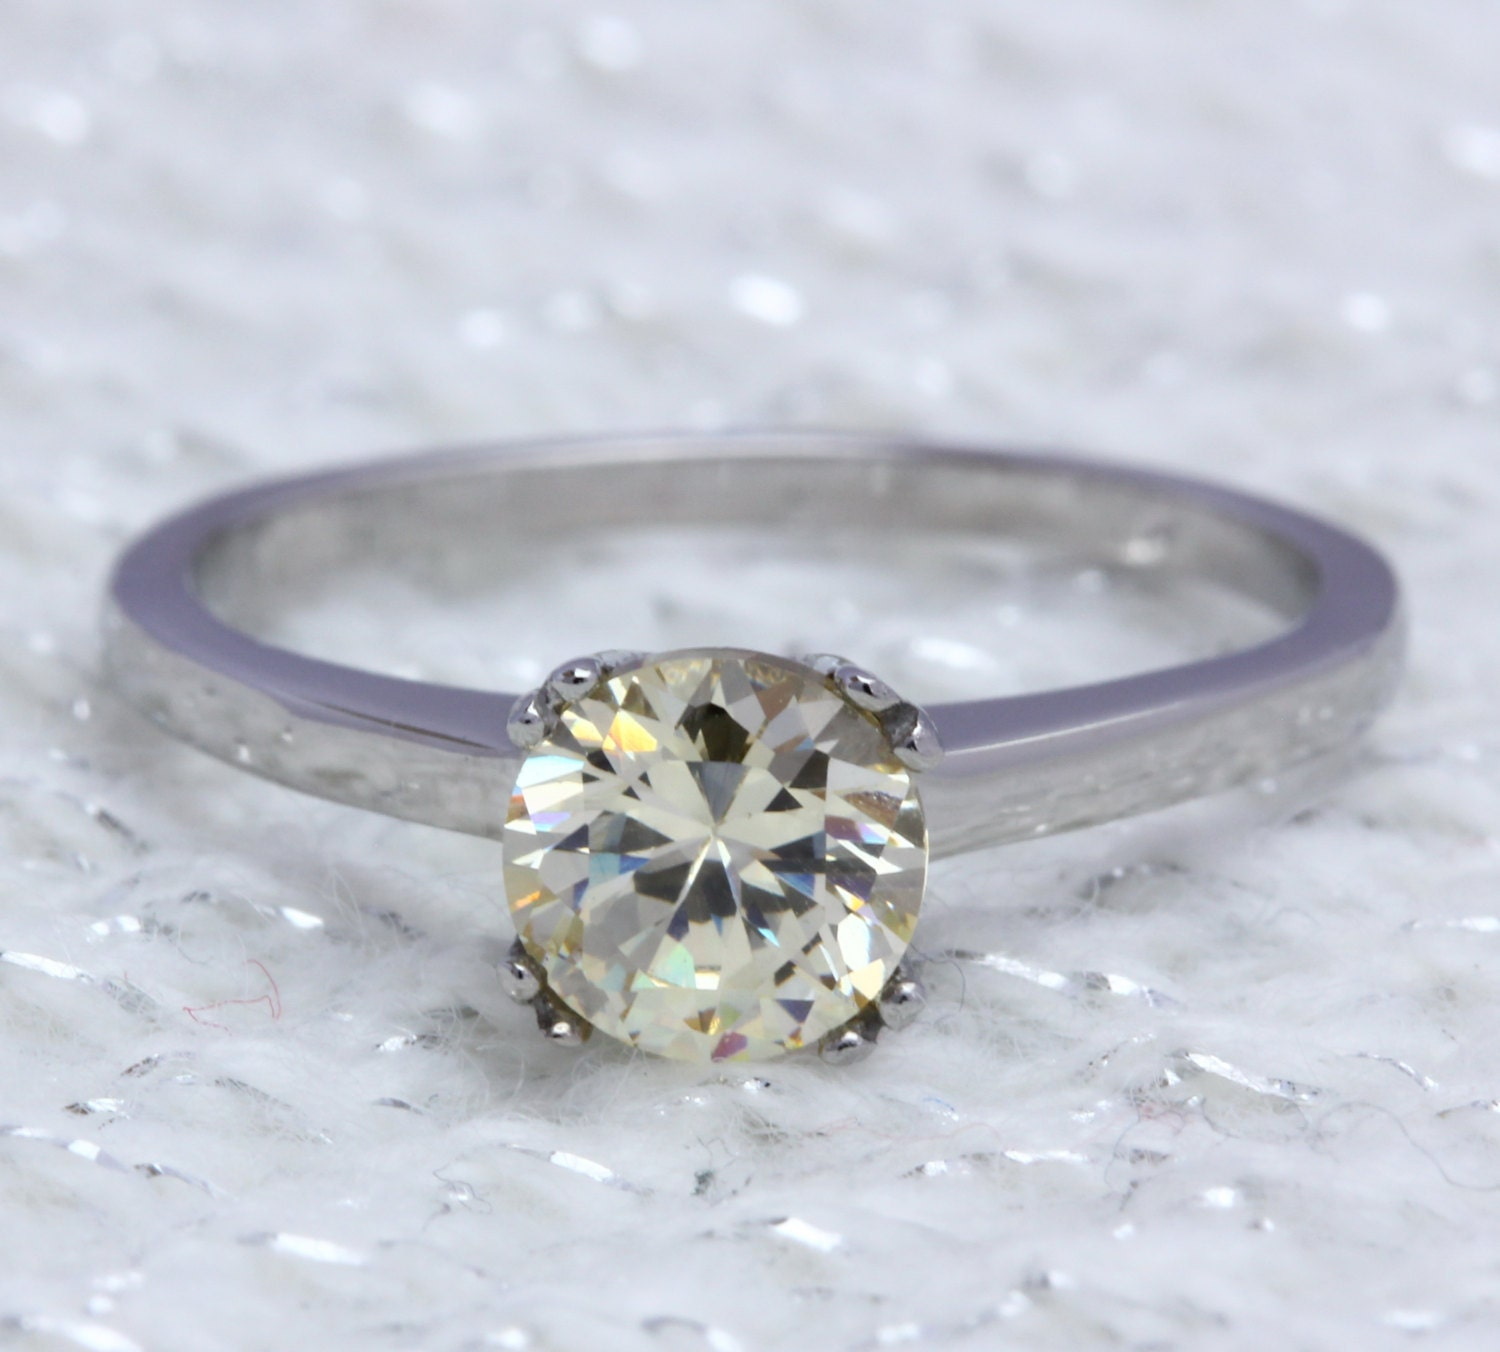 Genuine 1ct Citrine solitaire ring in Titanium or White Gold  engagement ring  wedding ring  handmade ring